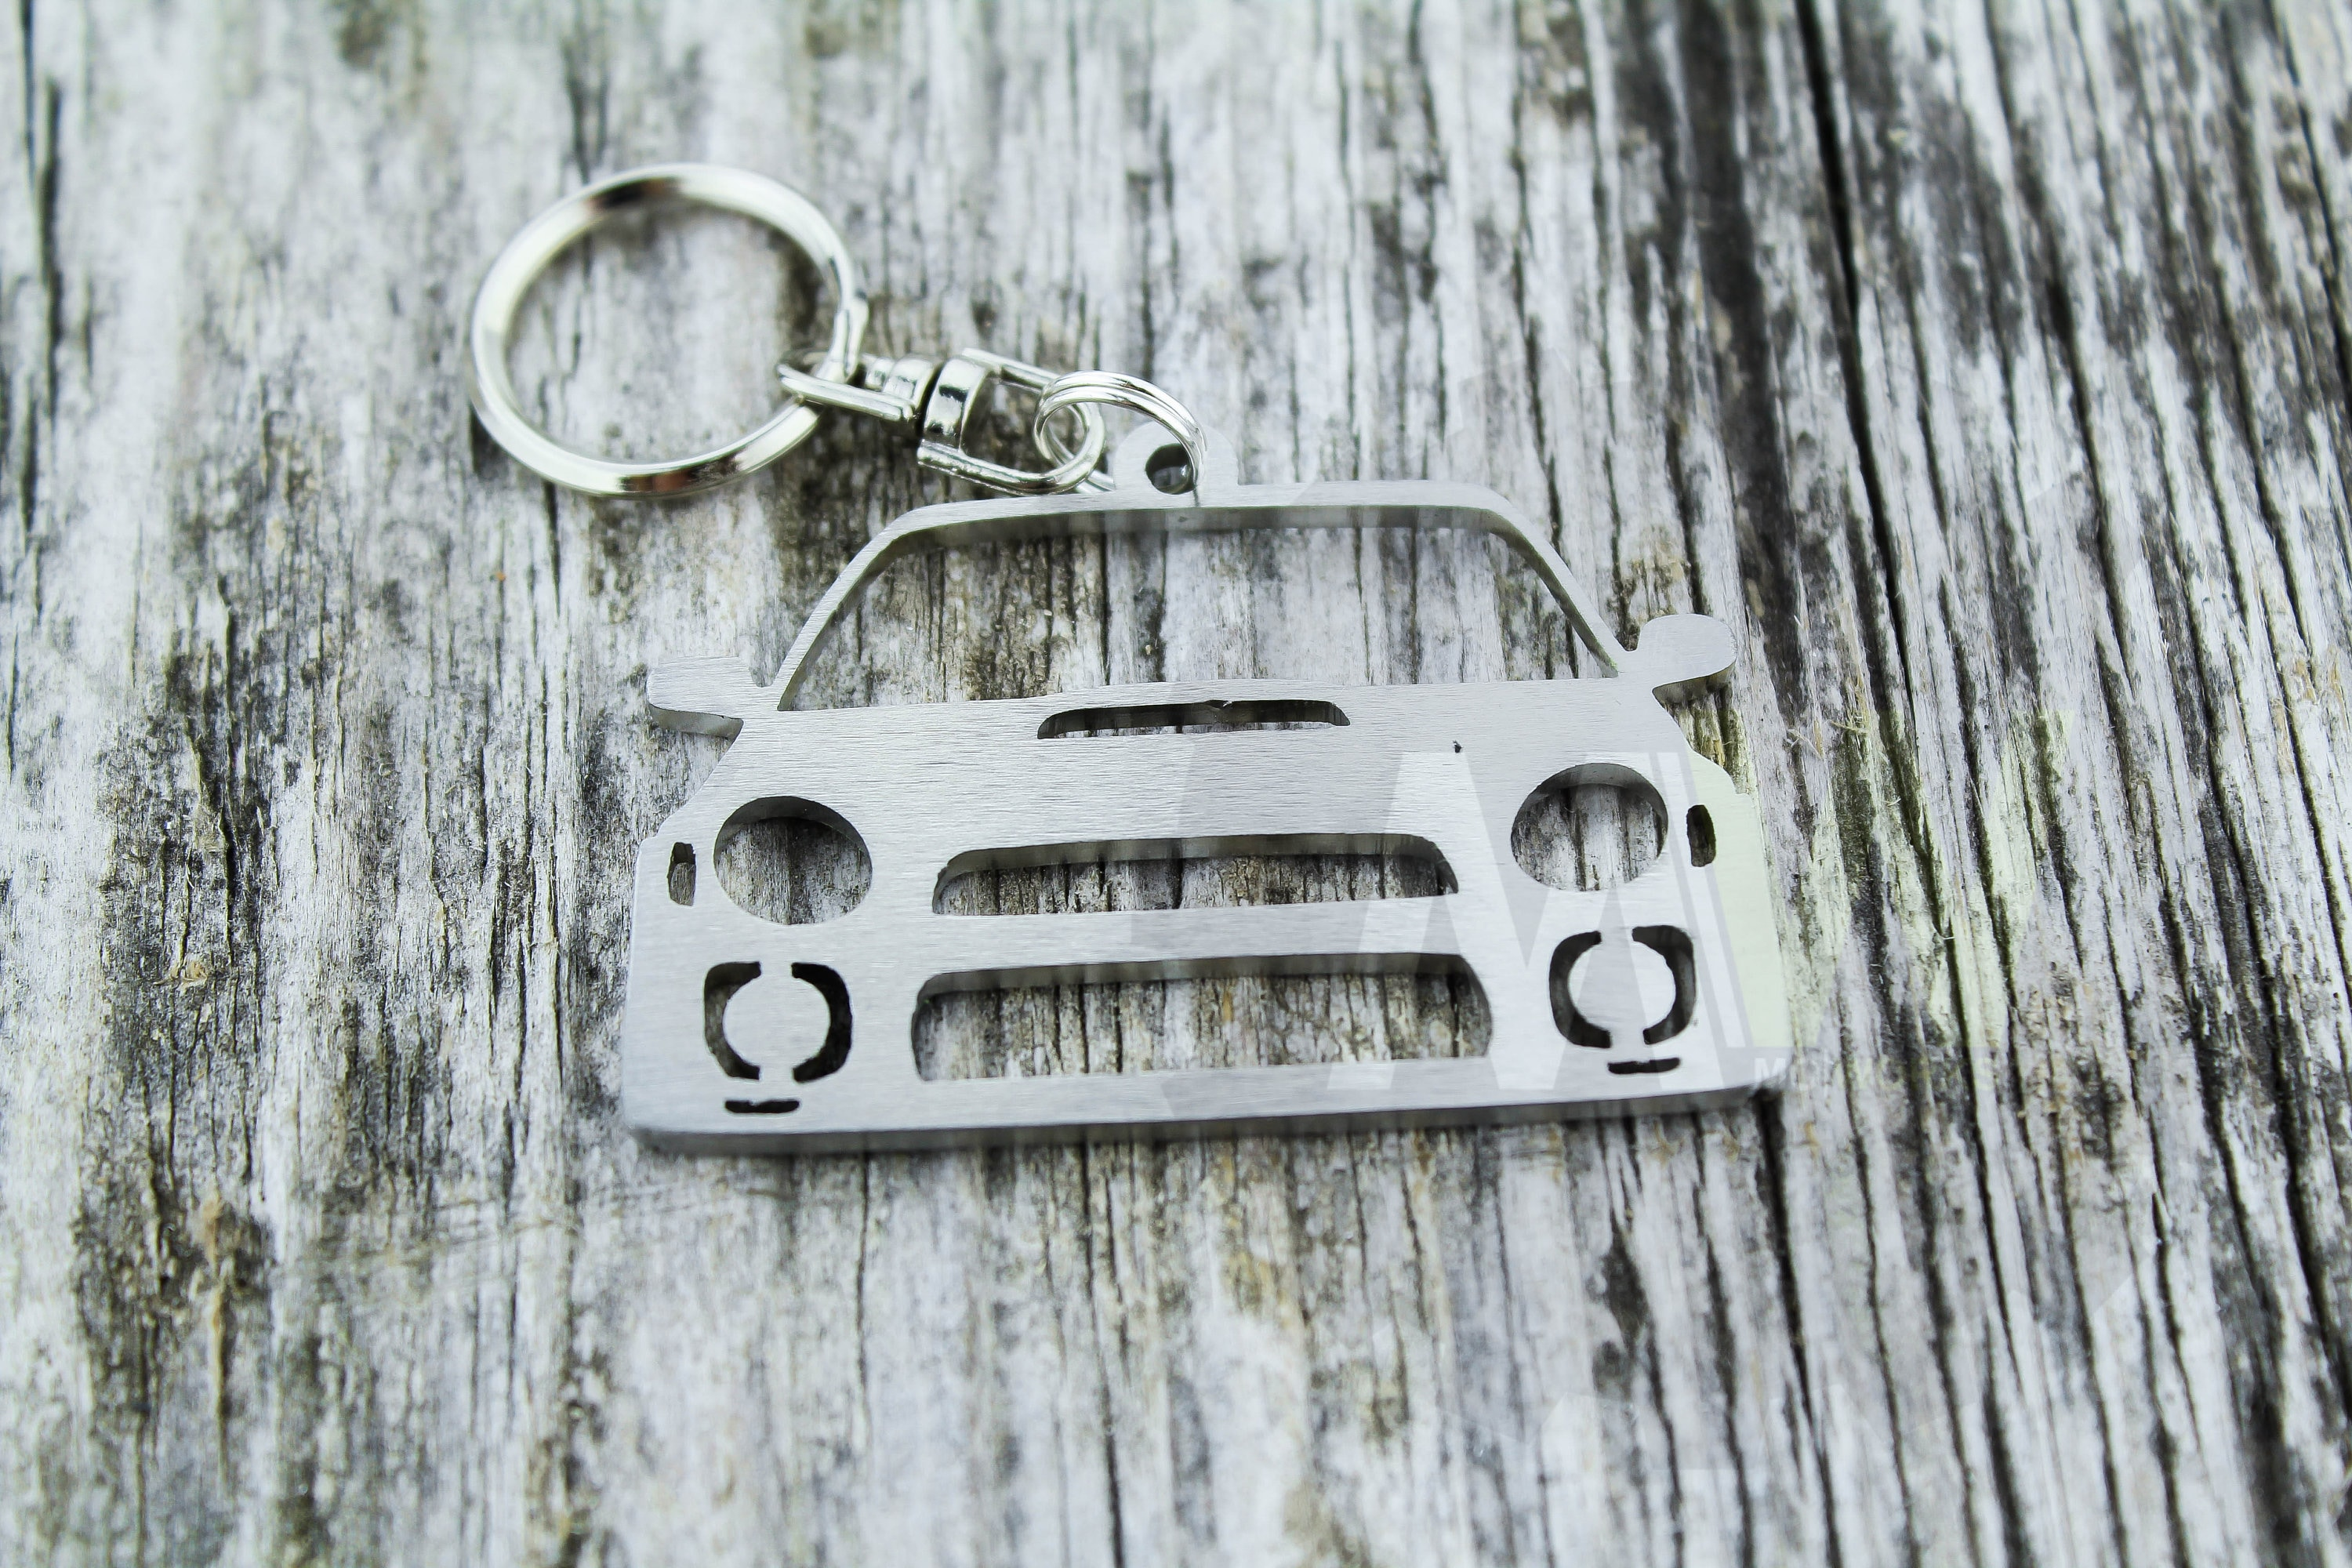 Bugeye keychain GD GC wagon awd turbo rally sohc dohc EJ257